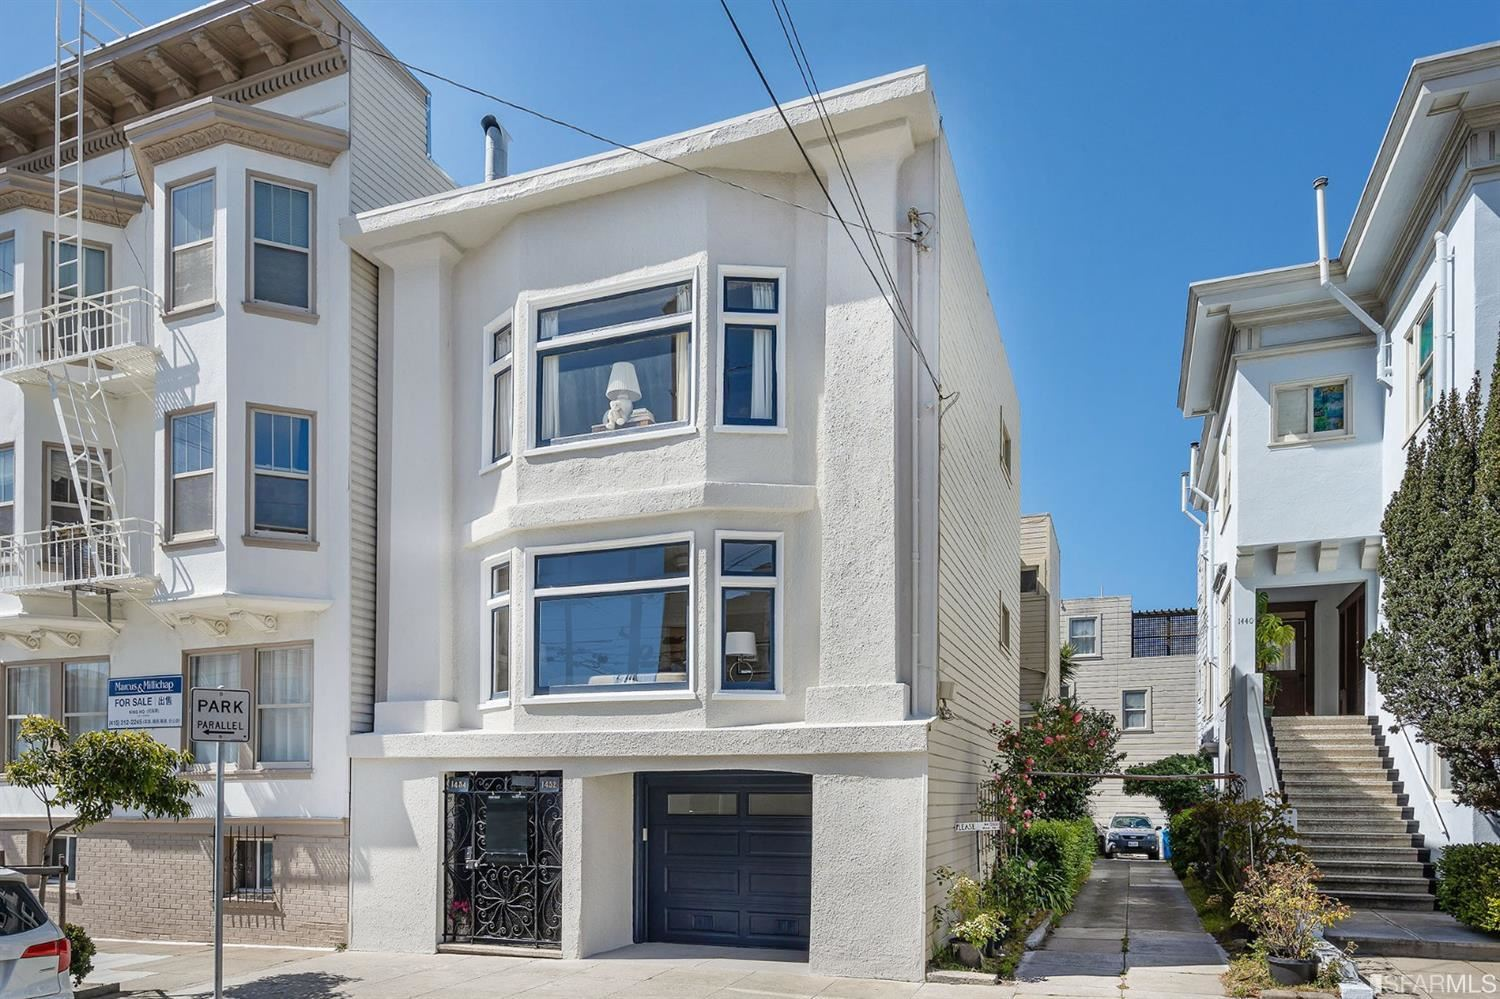 1452 1454 Clement Street, San Francisco, CA 94118 - #: 421545737